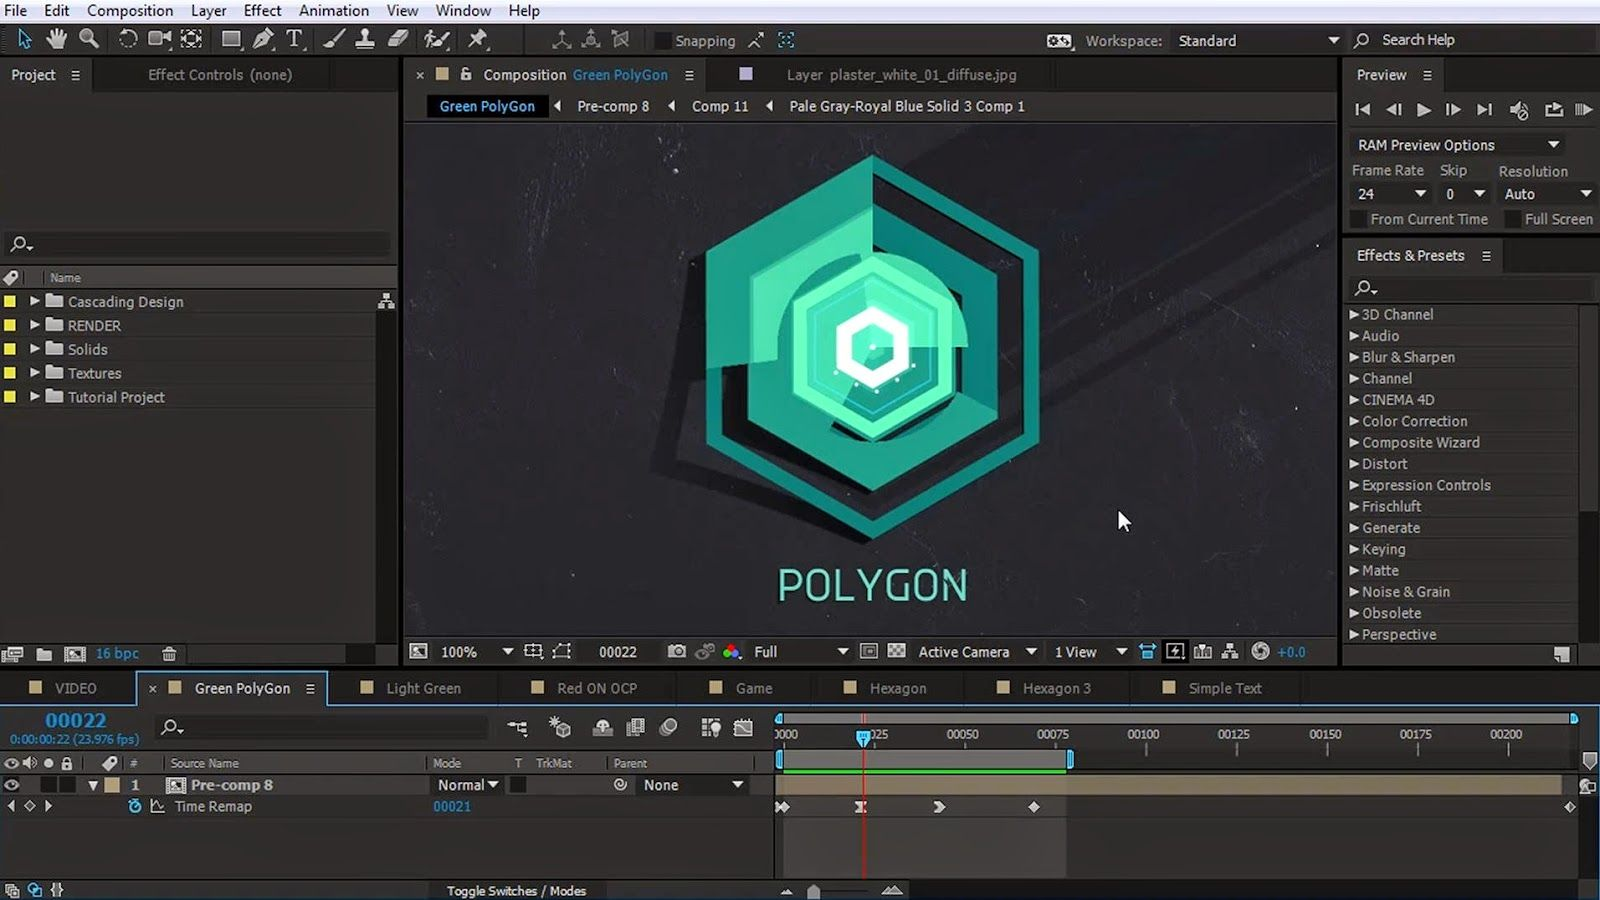 How to create Animated Polygon in After Effects | CG Tutorials ...